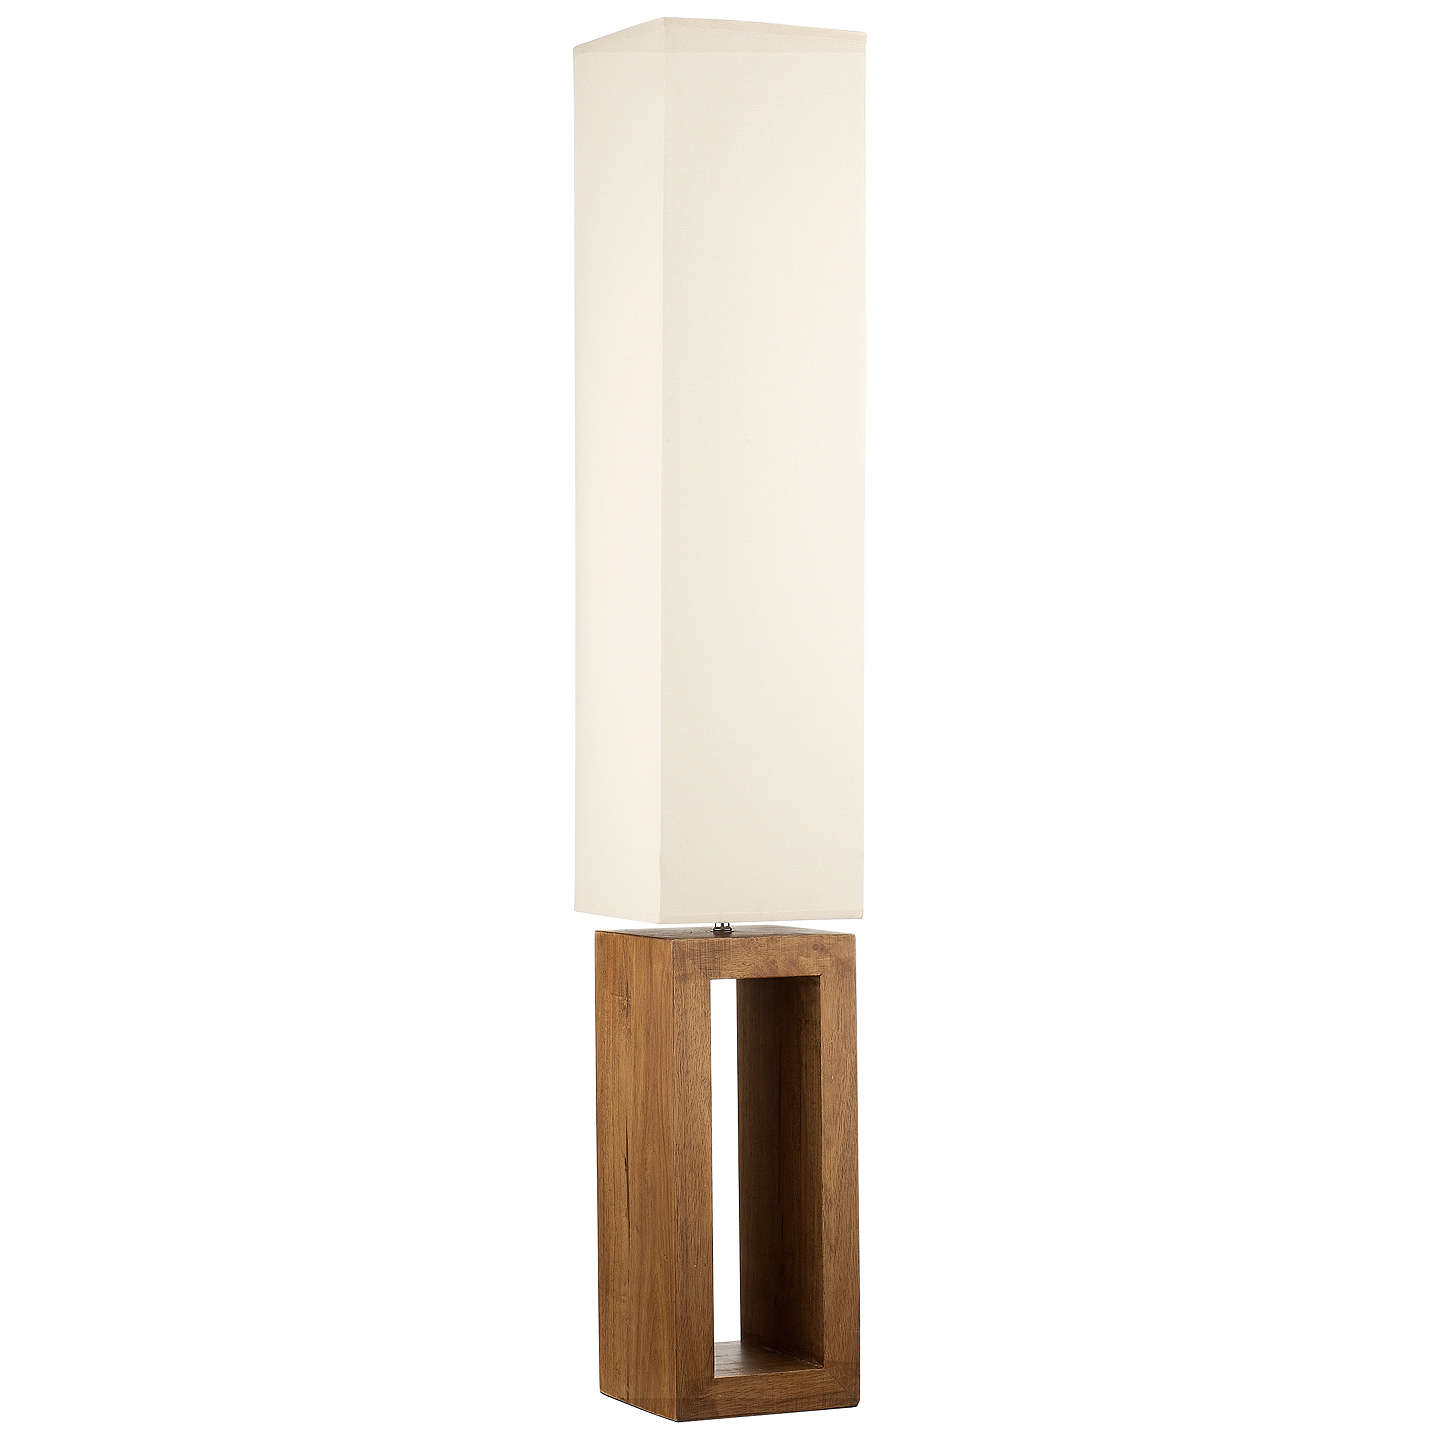 John lewis echo wood floor lamp at john lewis buyjohn lewis echo wood floor lamp online at johnlewis mozeypictures Choice Image